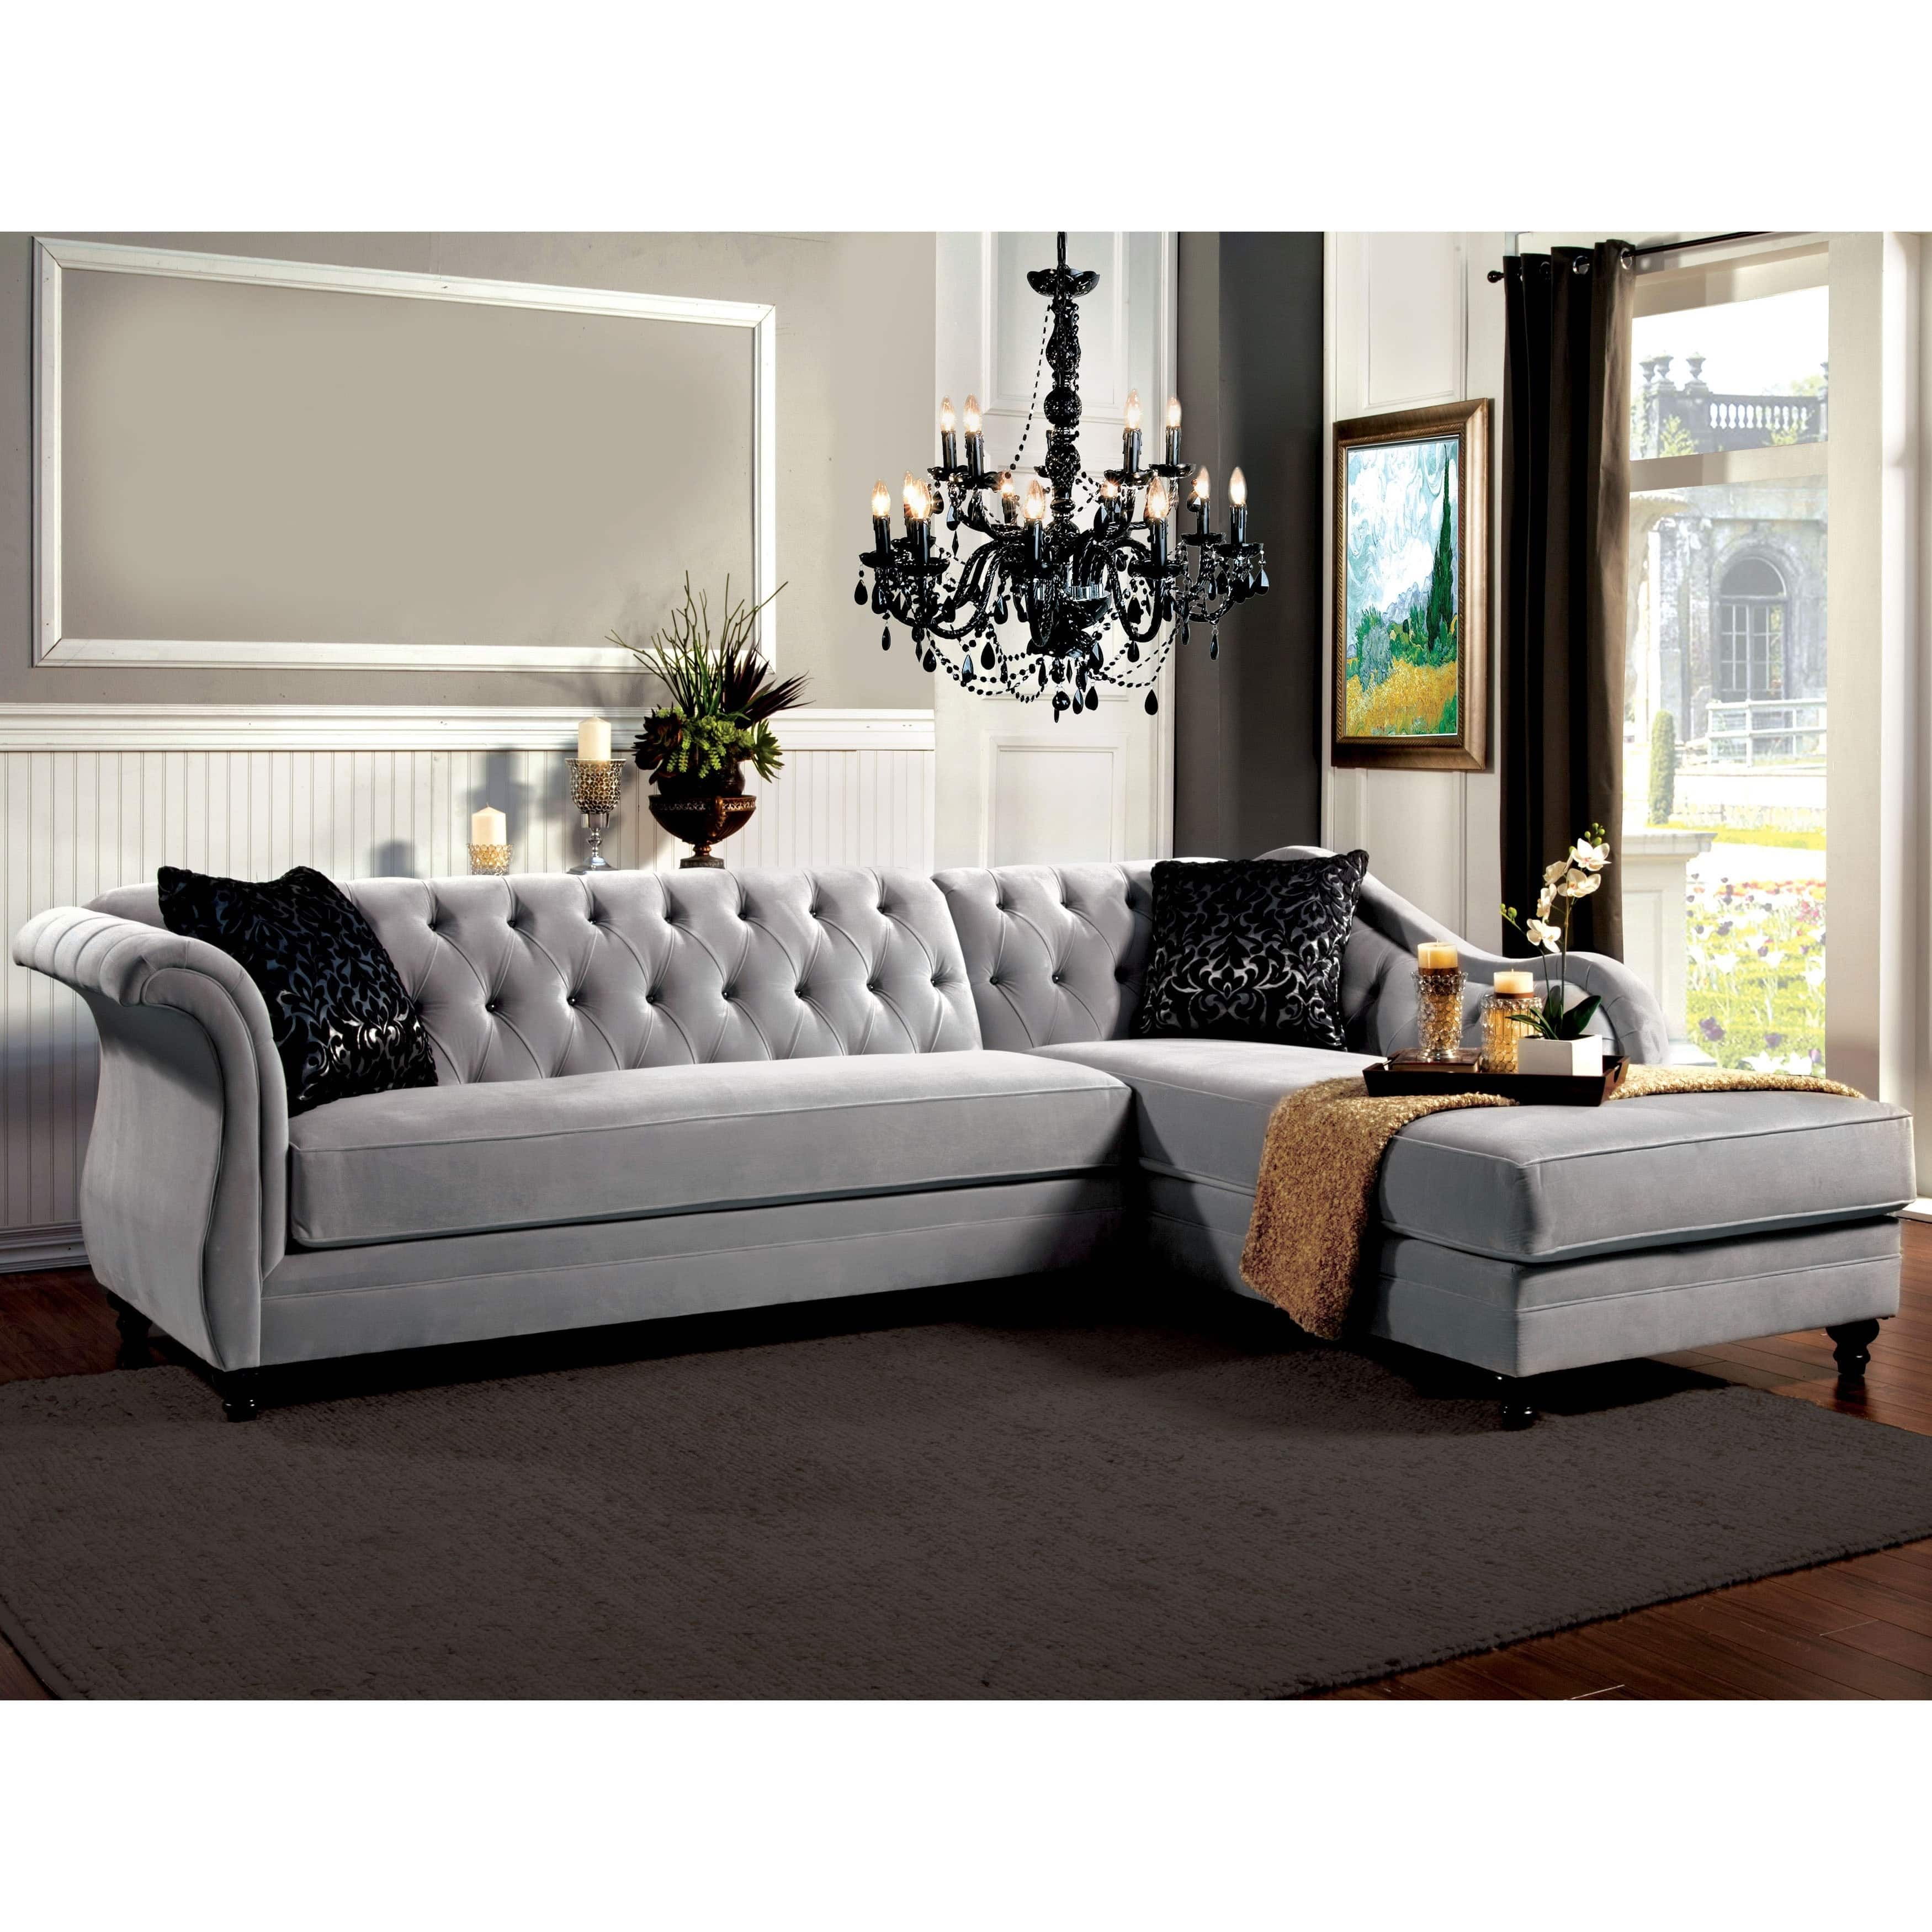 Furniture Of America Gito Contemporary Velvet 2 Piece Sectional Tufted Sectional